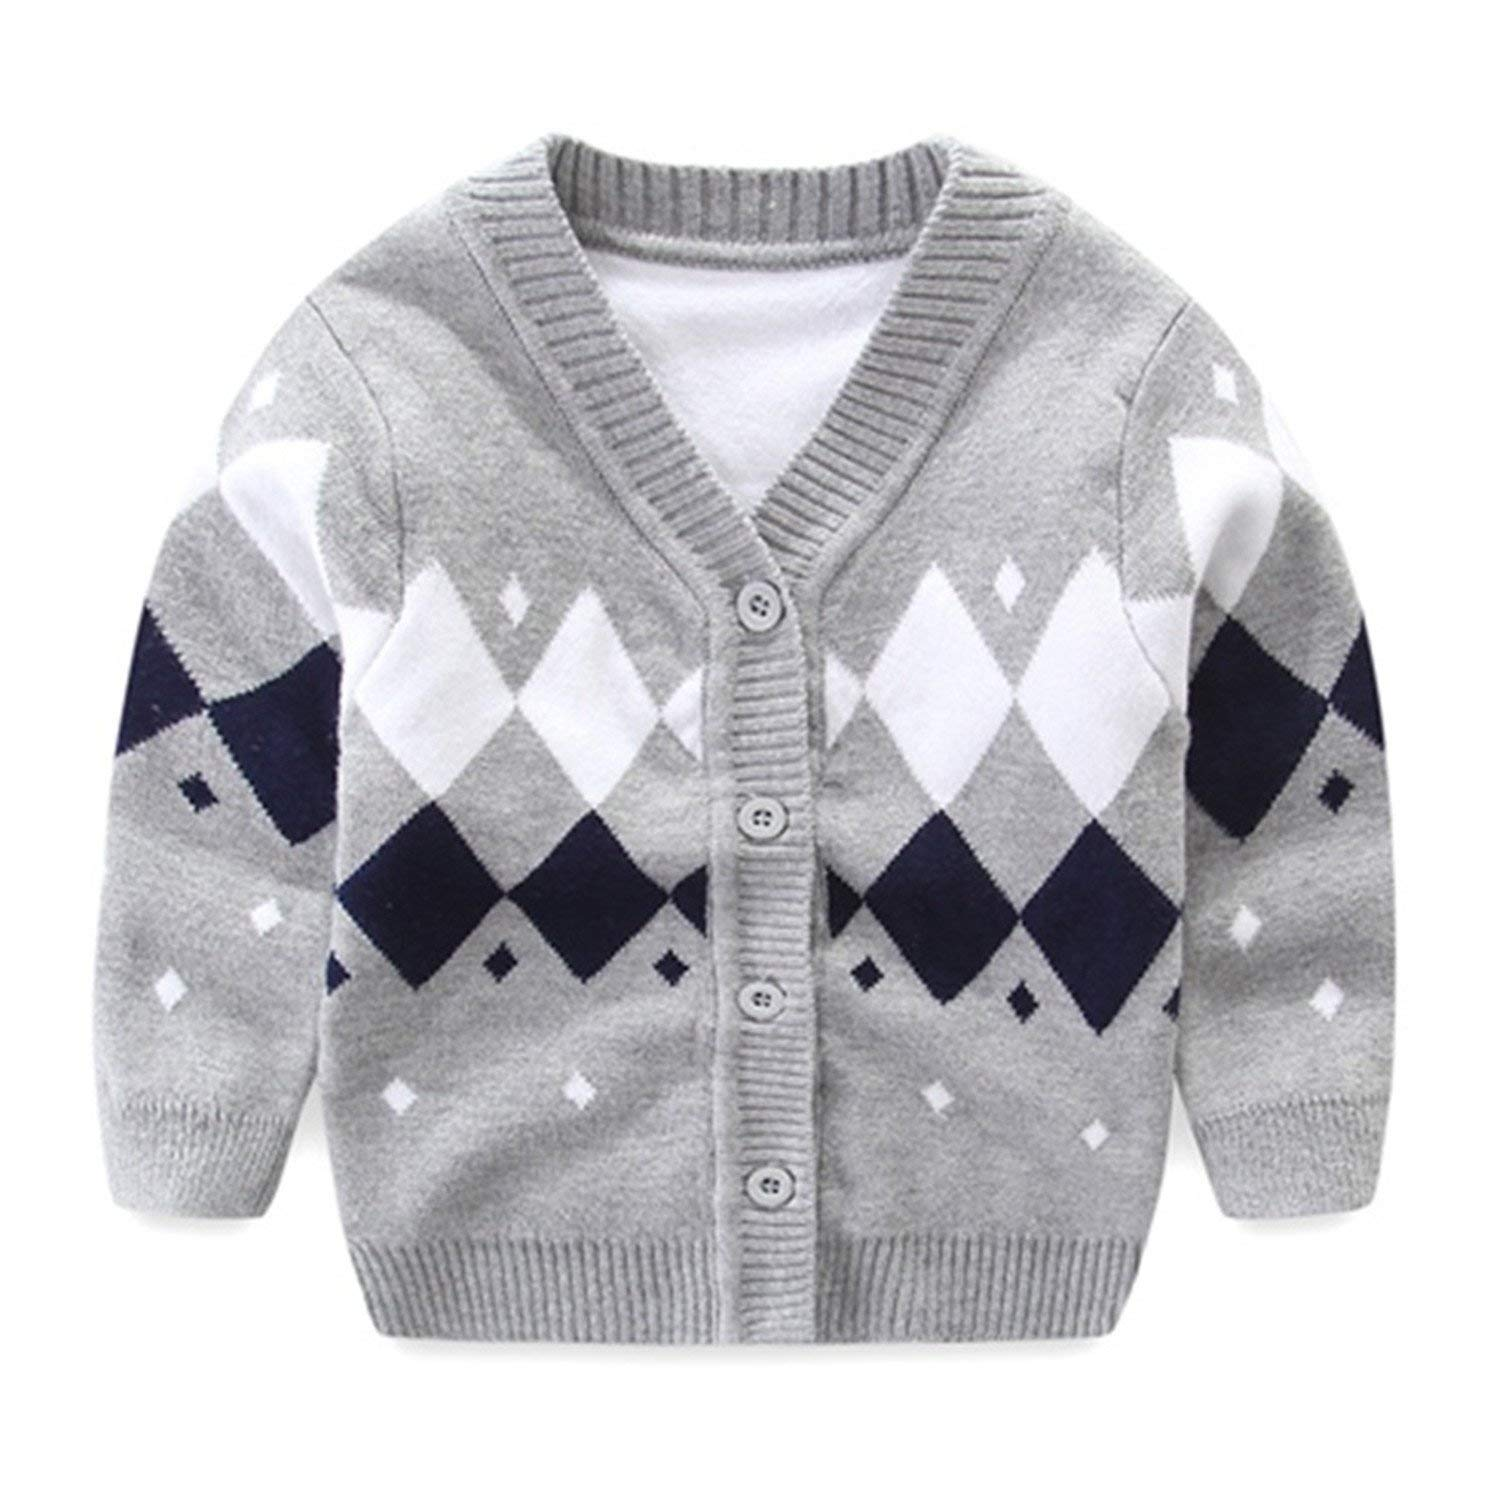 01088f3df Cheap Baby Sweater Boy